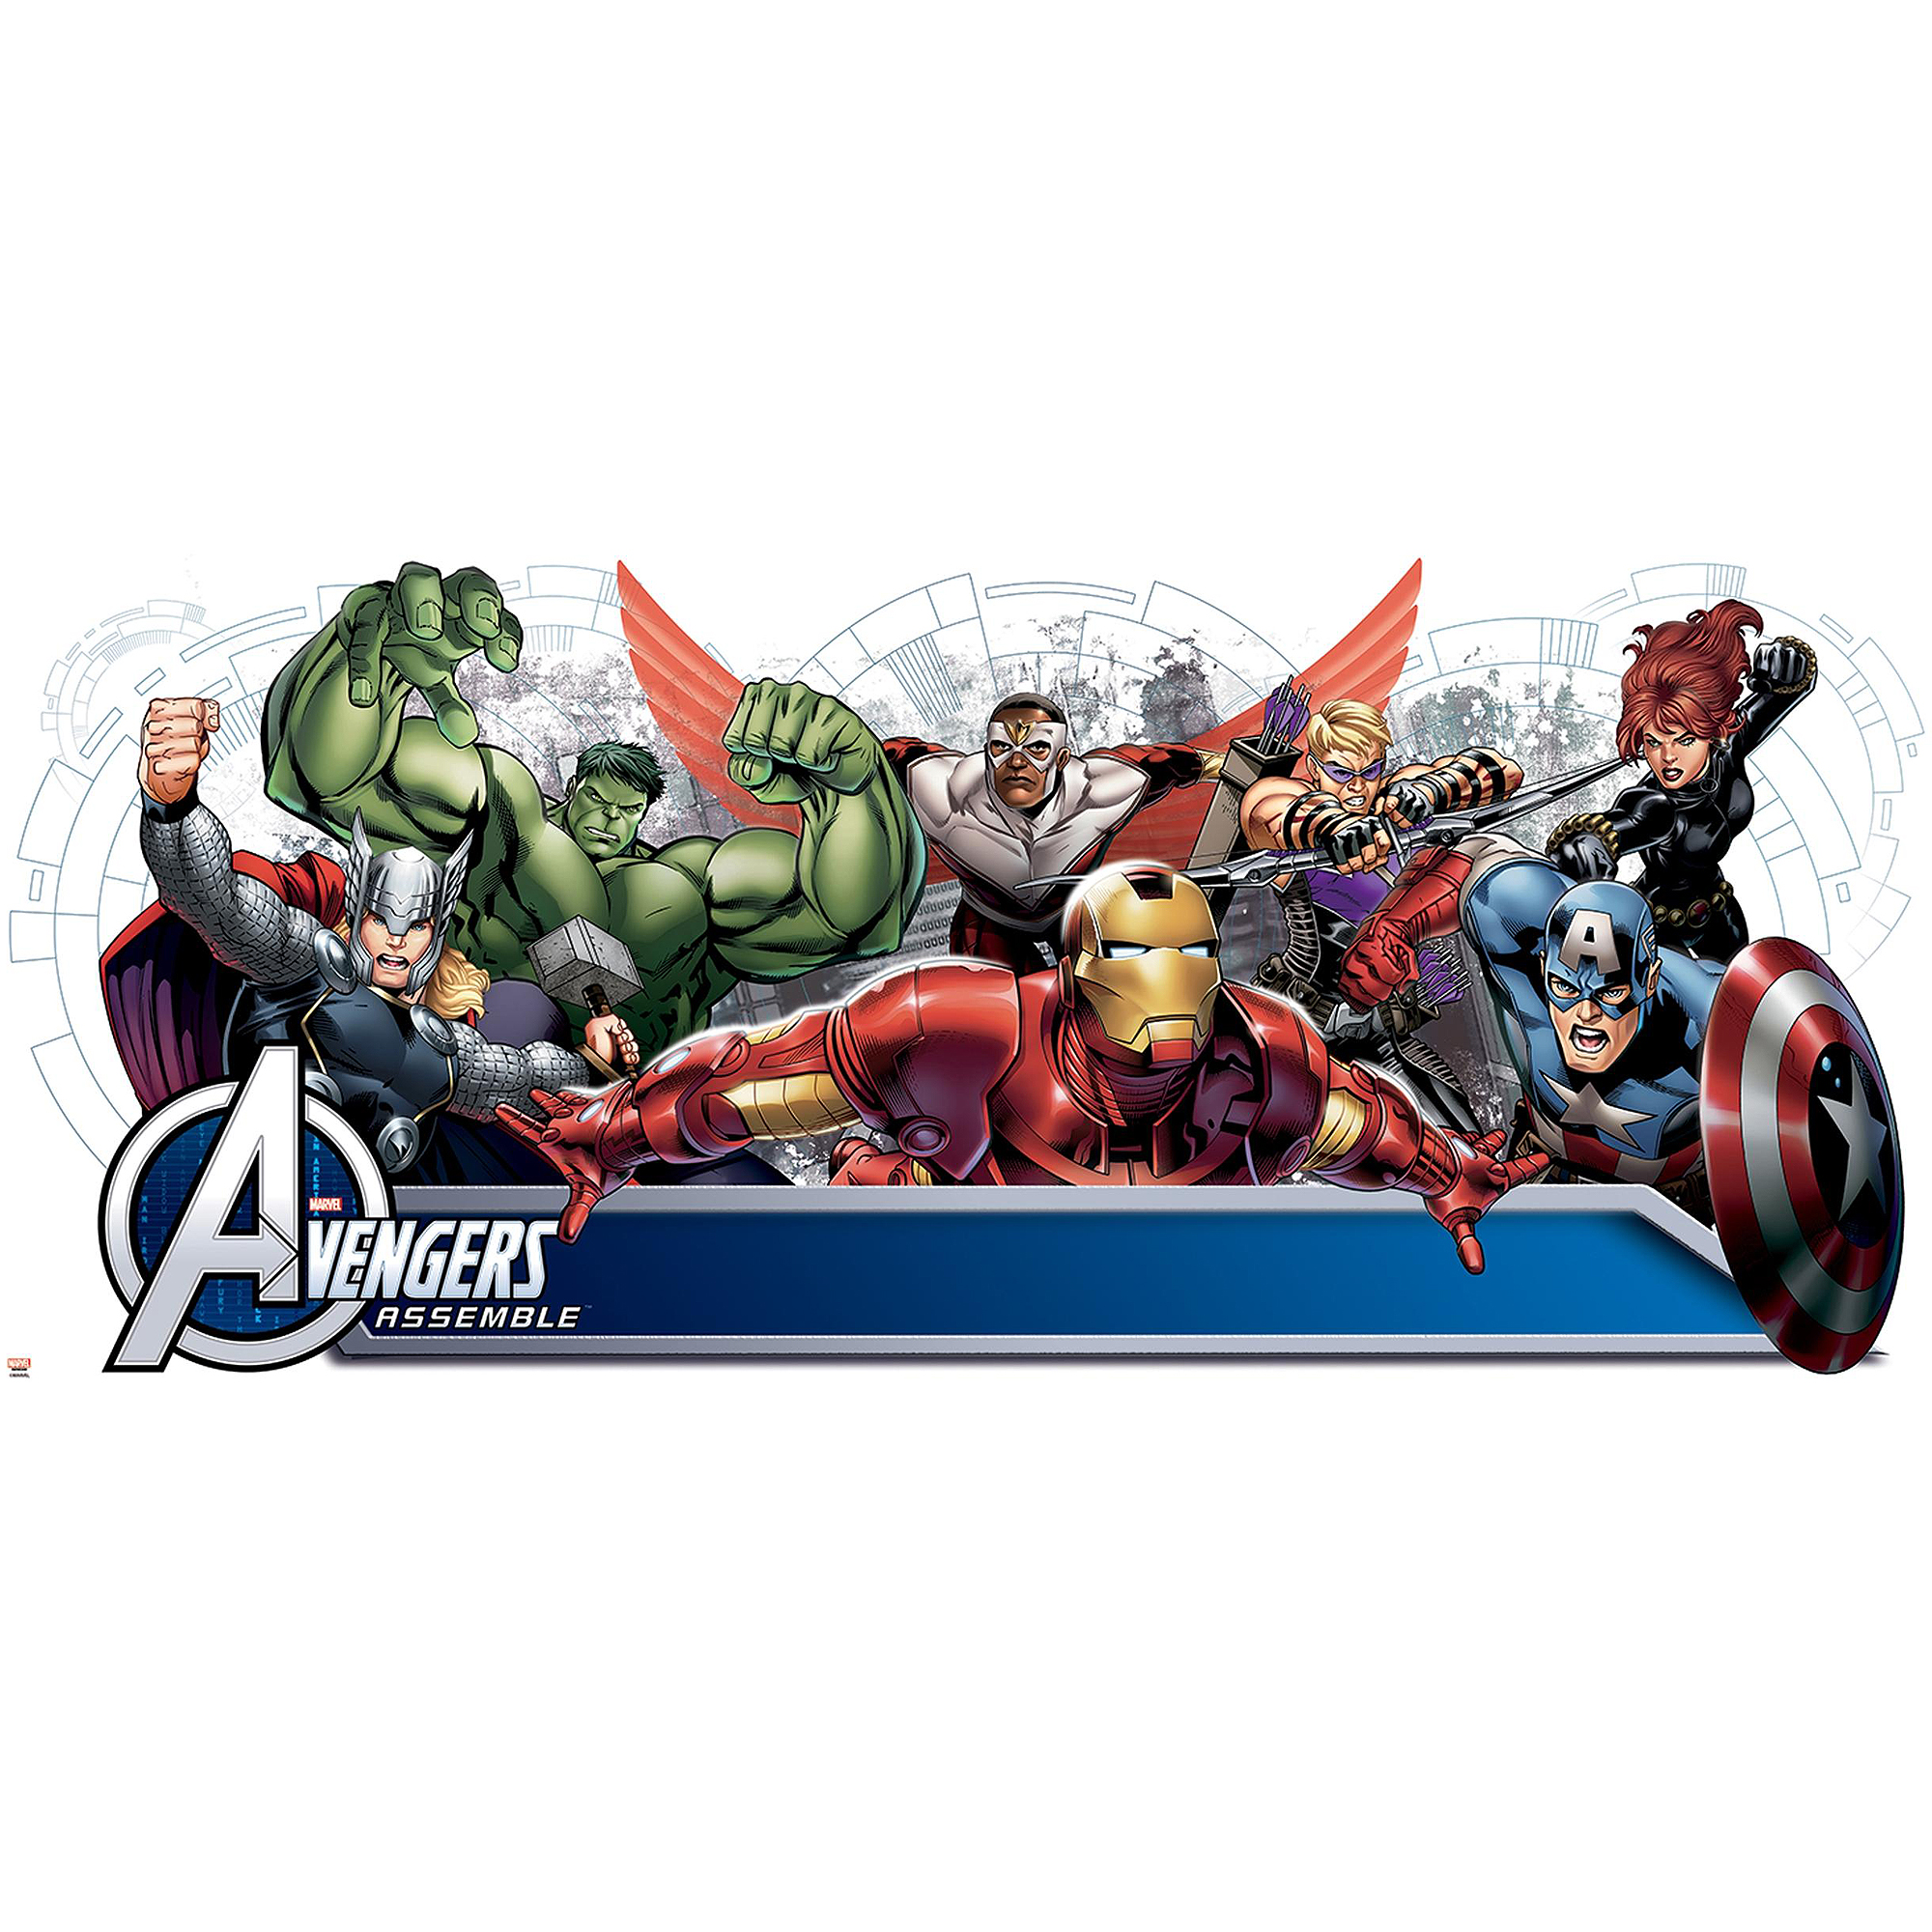 Avengers Assemble Personalization Headboard Peel-and-Stick Wall Decals